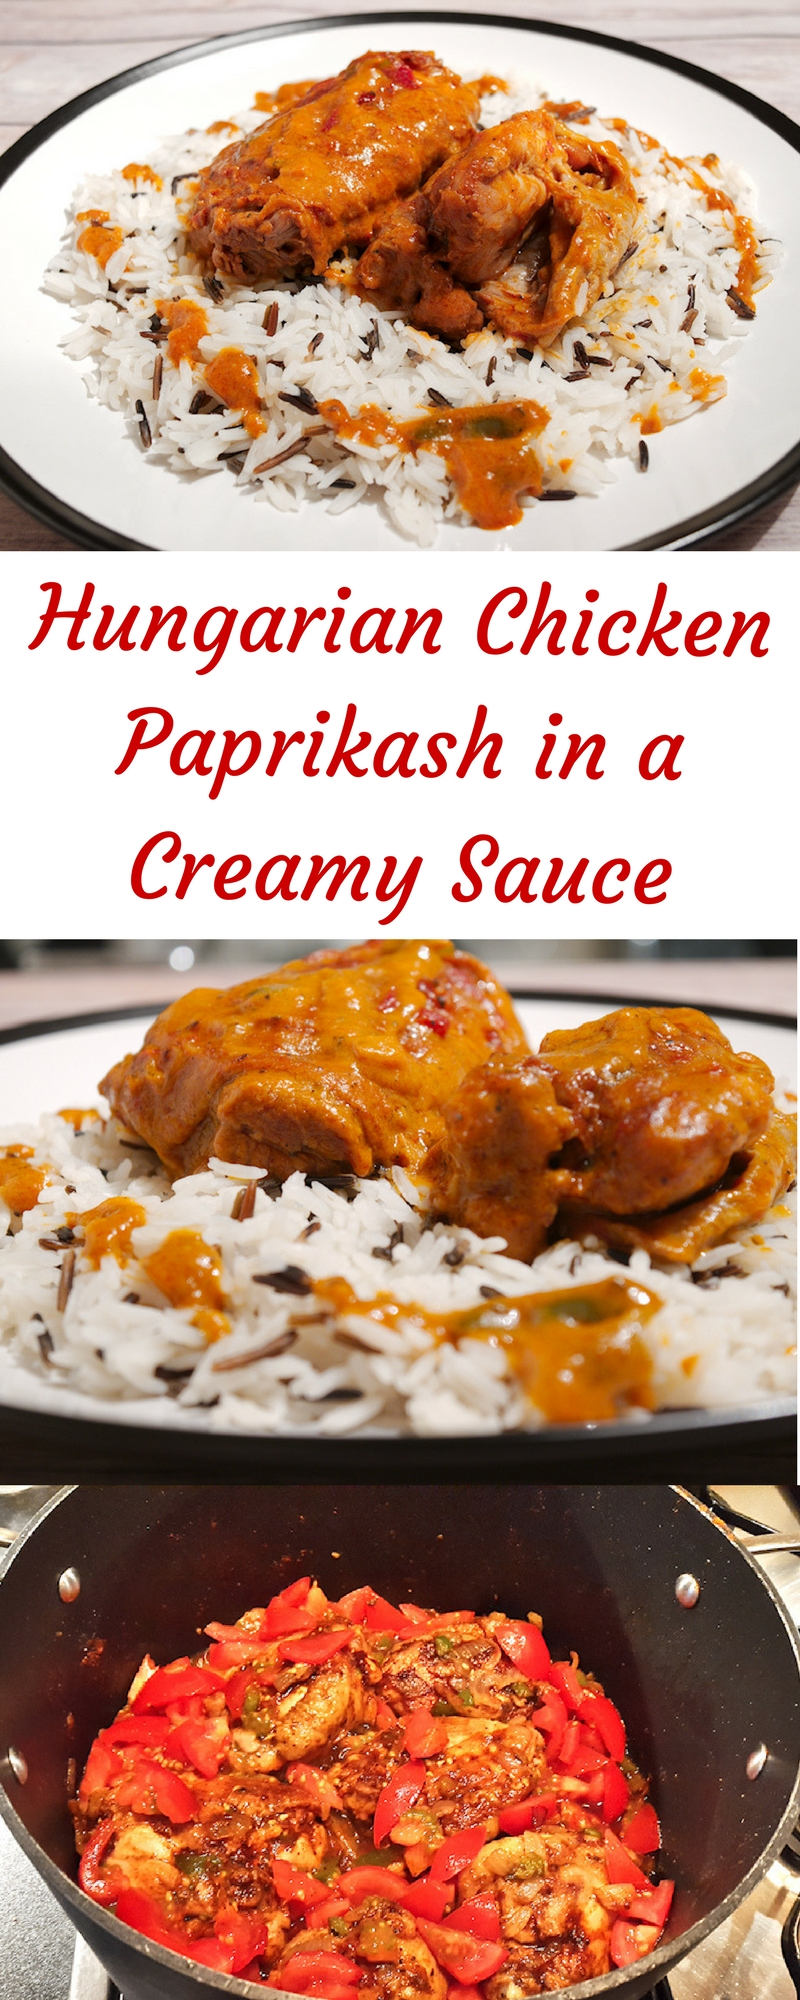 Hungarian Chicken Paprikash in a Creamy Sauce